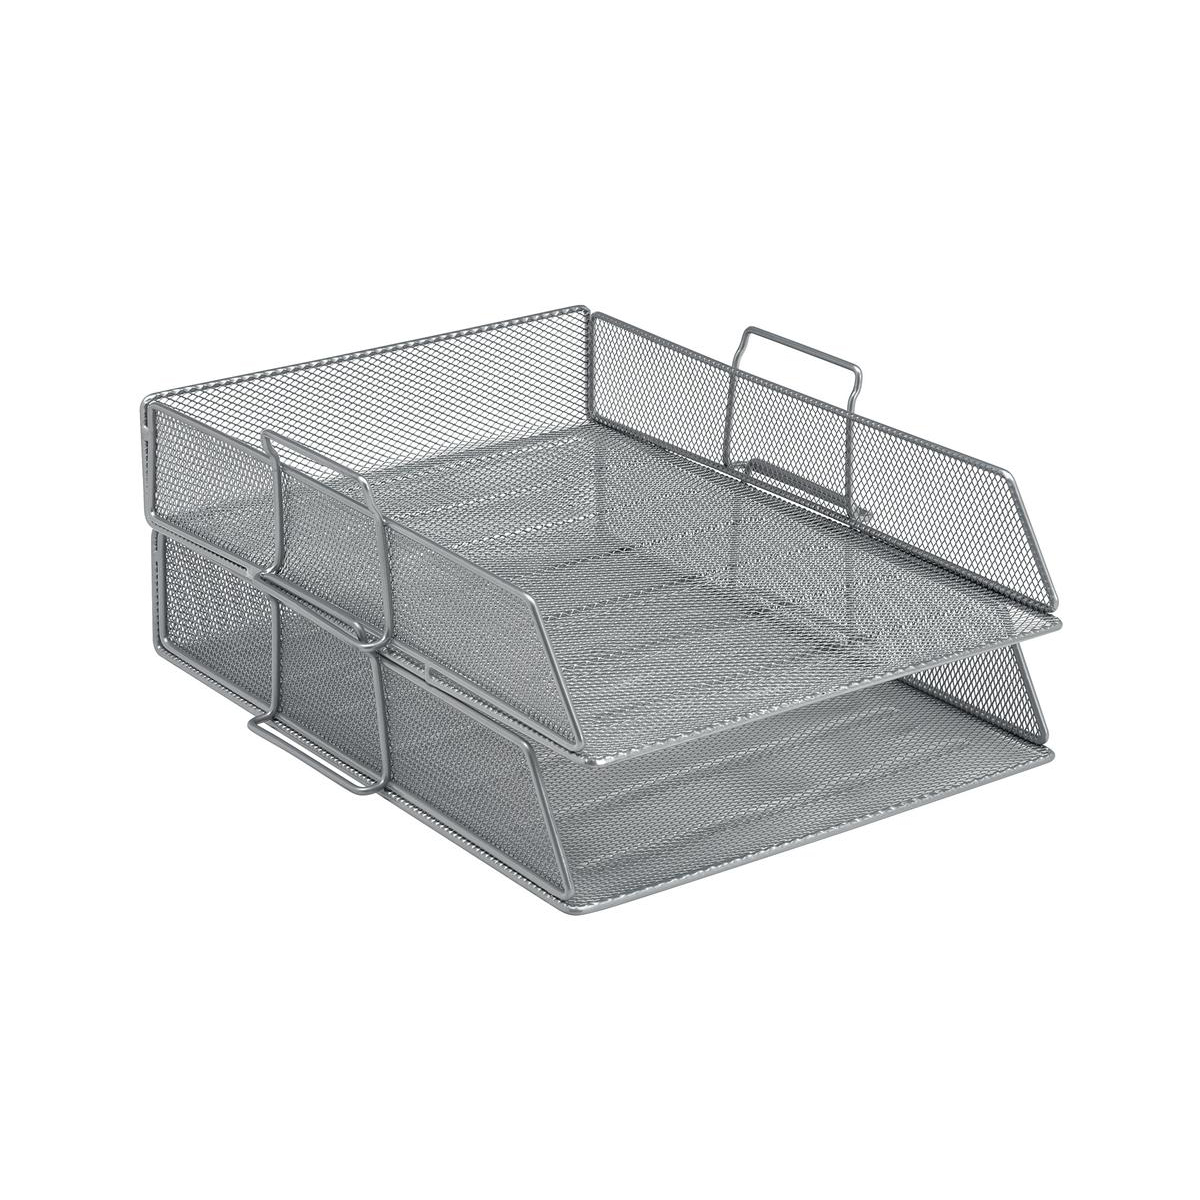 Letter Trays 5 Star Office Mesh Letter Tray Scratch Resistant Stackable Front Load Portrait Foolscap Silver